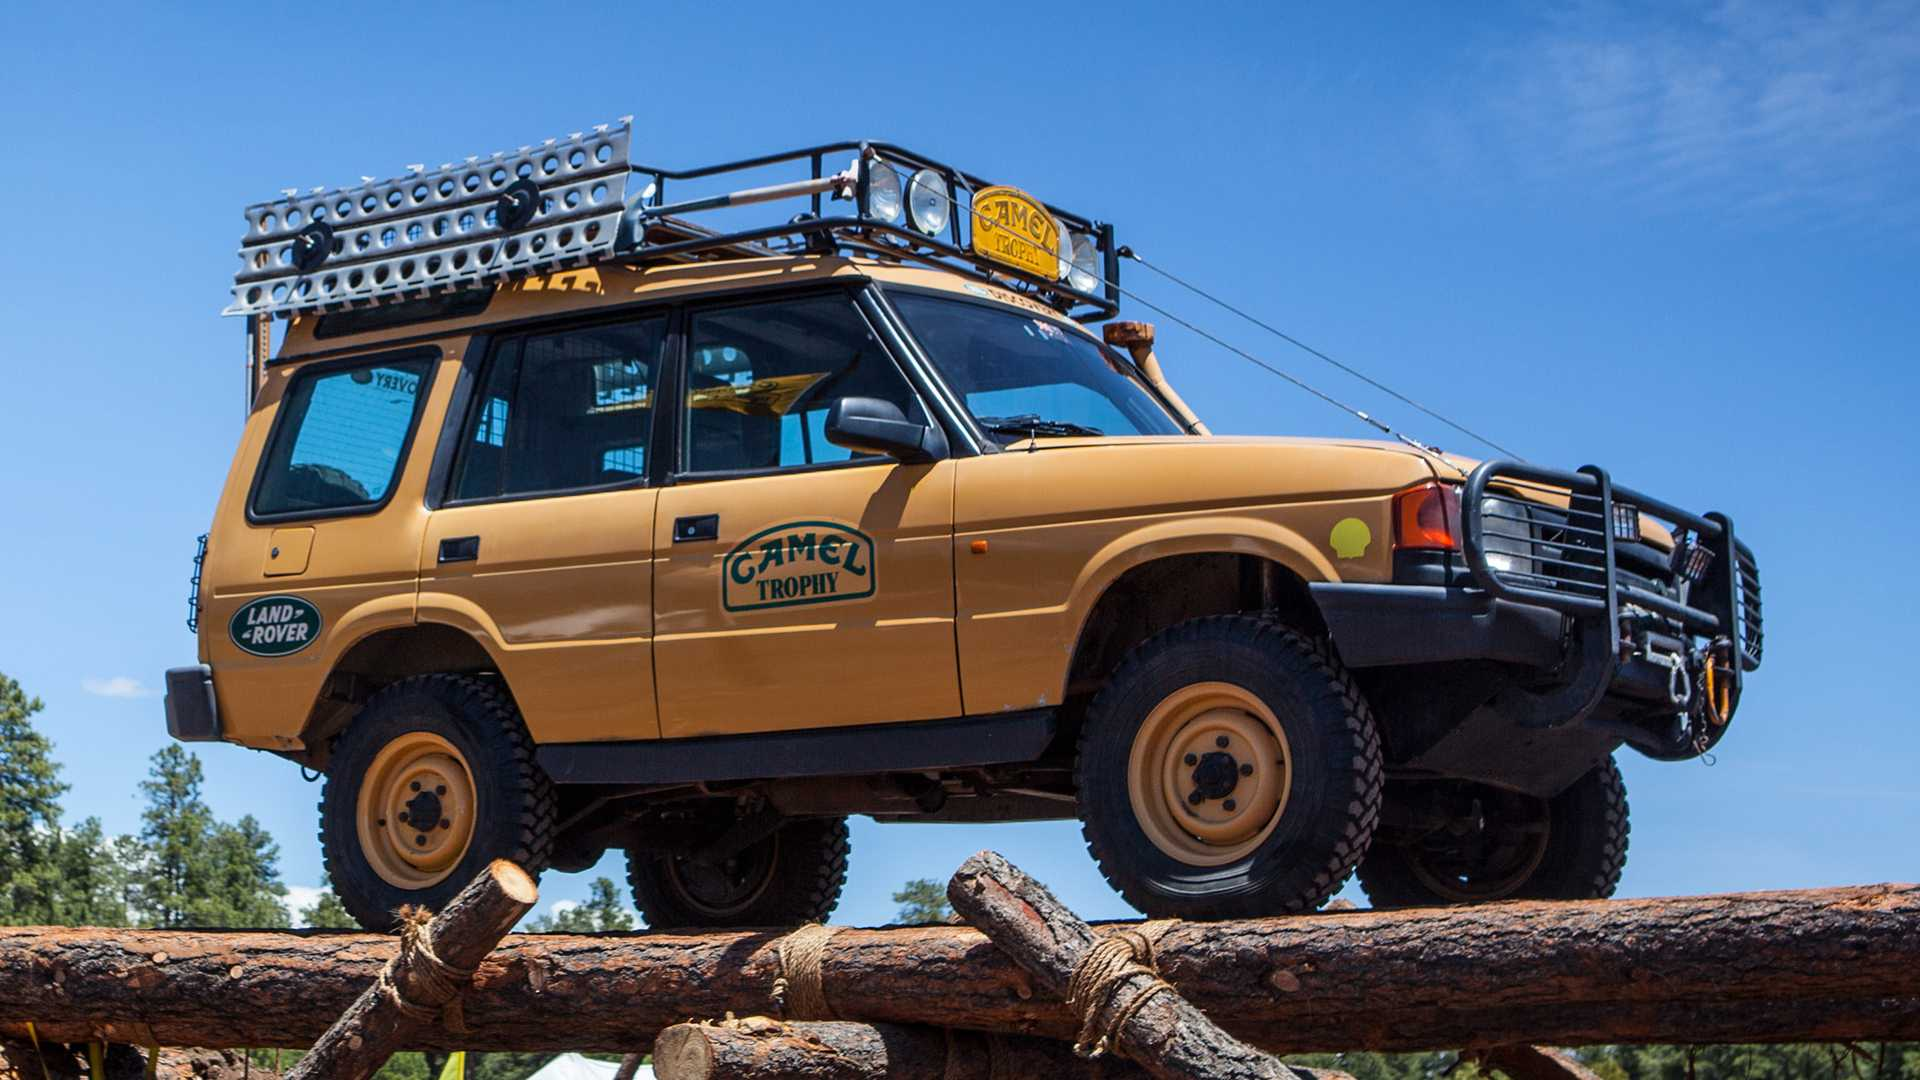 These Are 12 The Most Amazing Land Rovers Ever Built